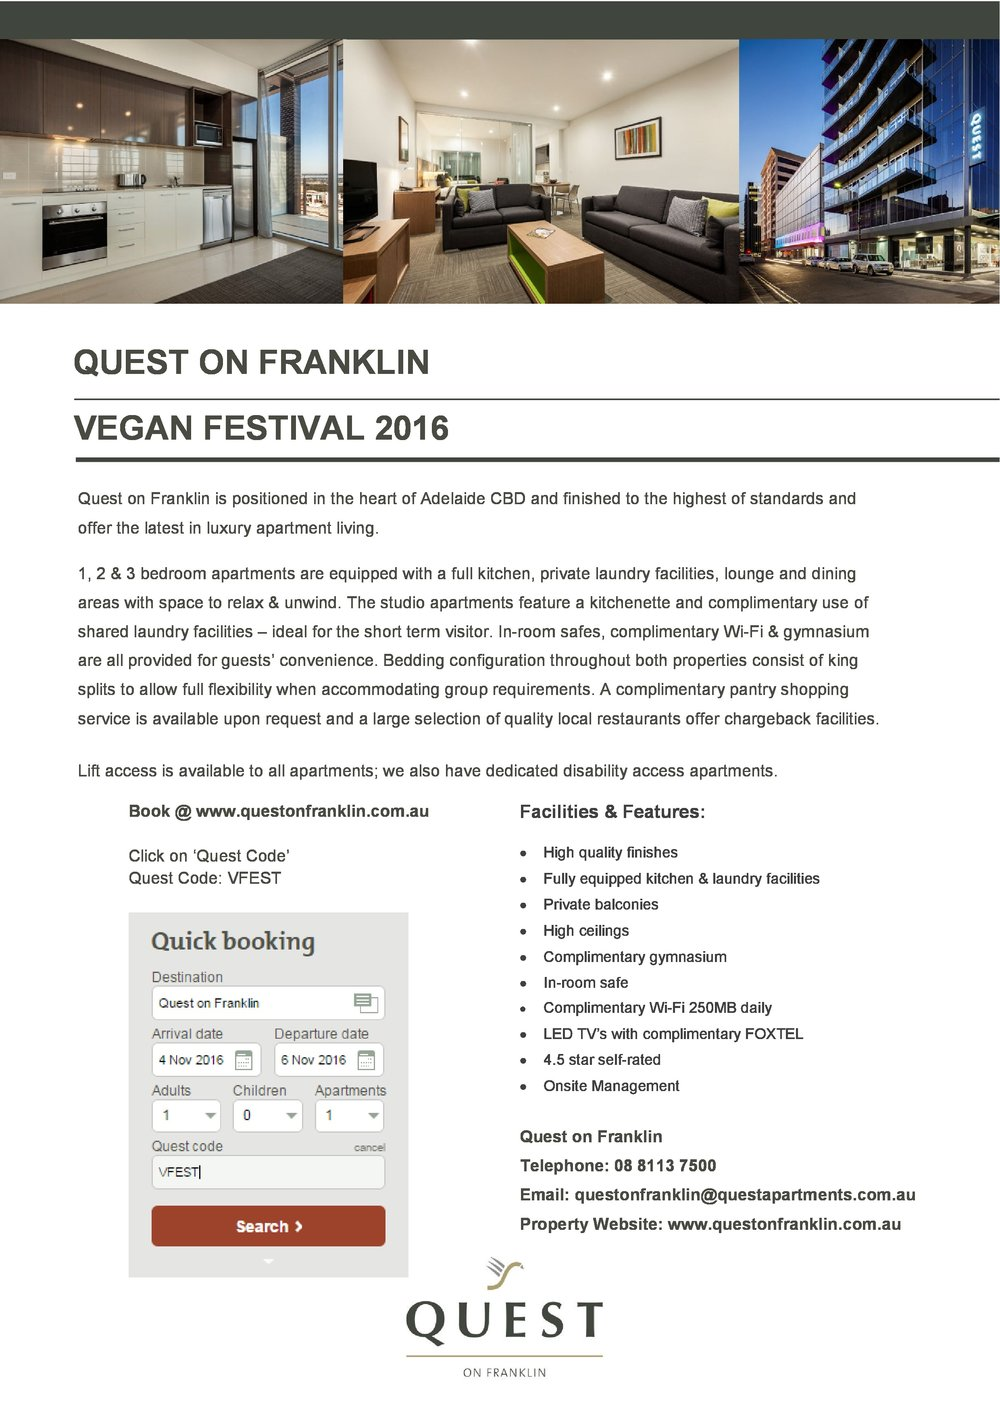 Quest on Franklin partners with Vegan Festival 2016